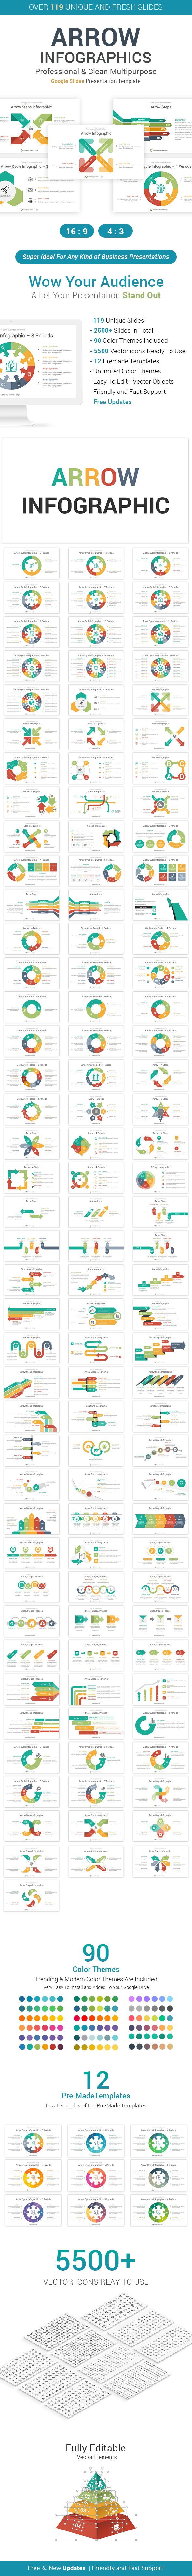 Arrow Infographics Google Slides Template Diagrams Powerpoint Templates Google Slides Template Business Powerpoint Templates Pastebin.com/fjffnumi if the first script model: pinterest